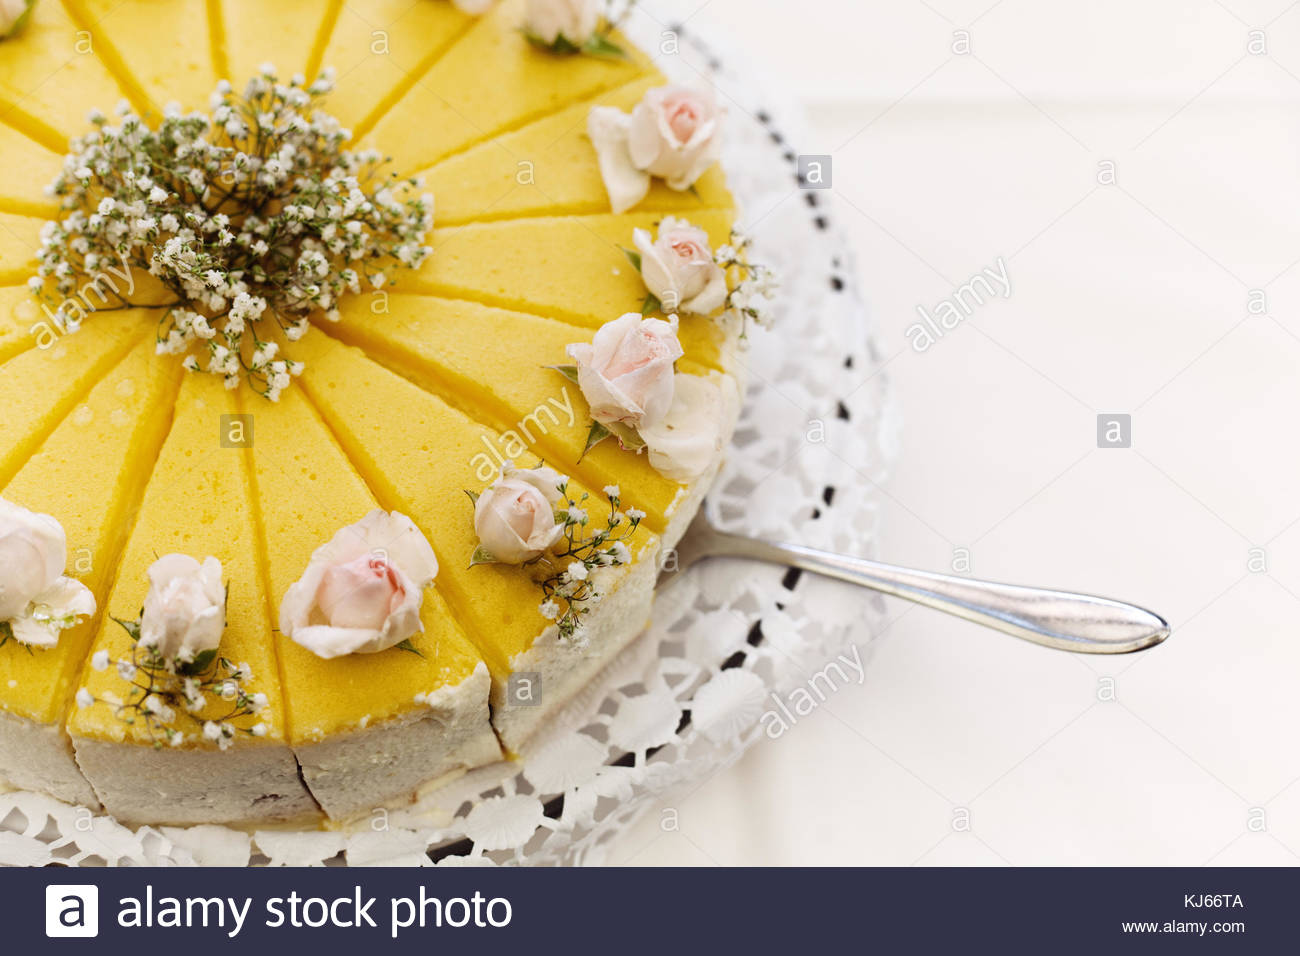 Cake with flower decorations - Stock Image